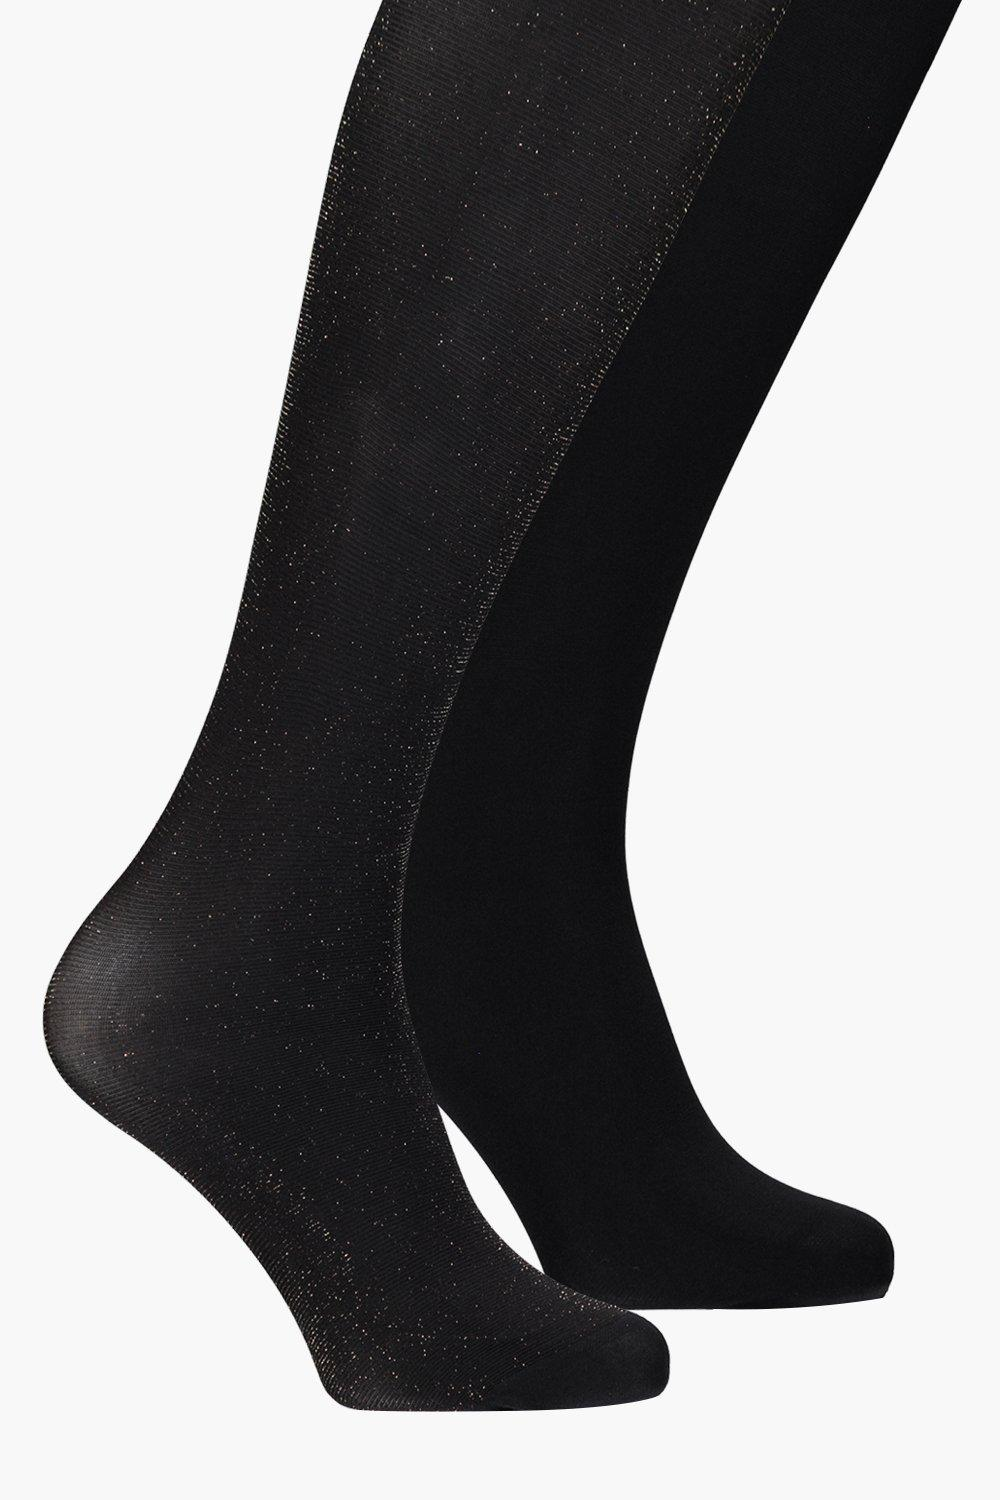 Casey Plain and Gold Sparkle Tights 2 Pack